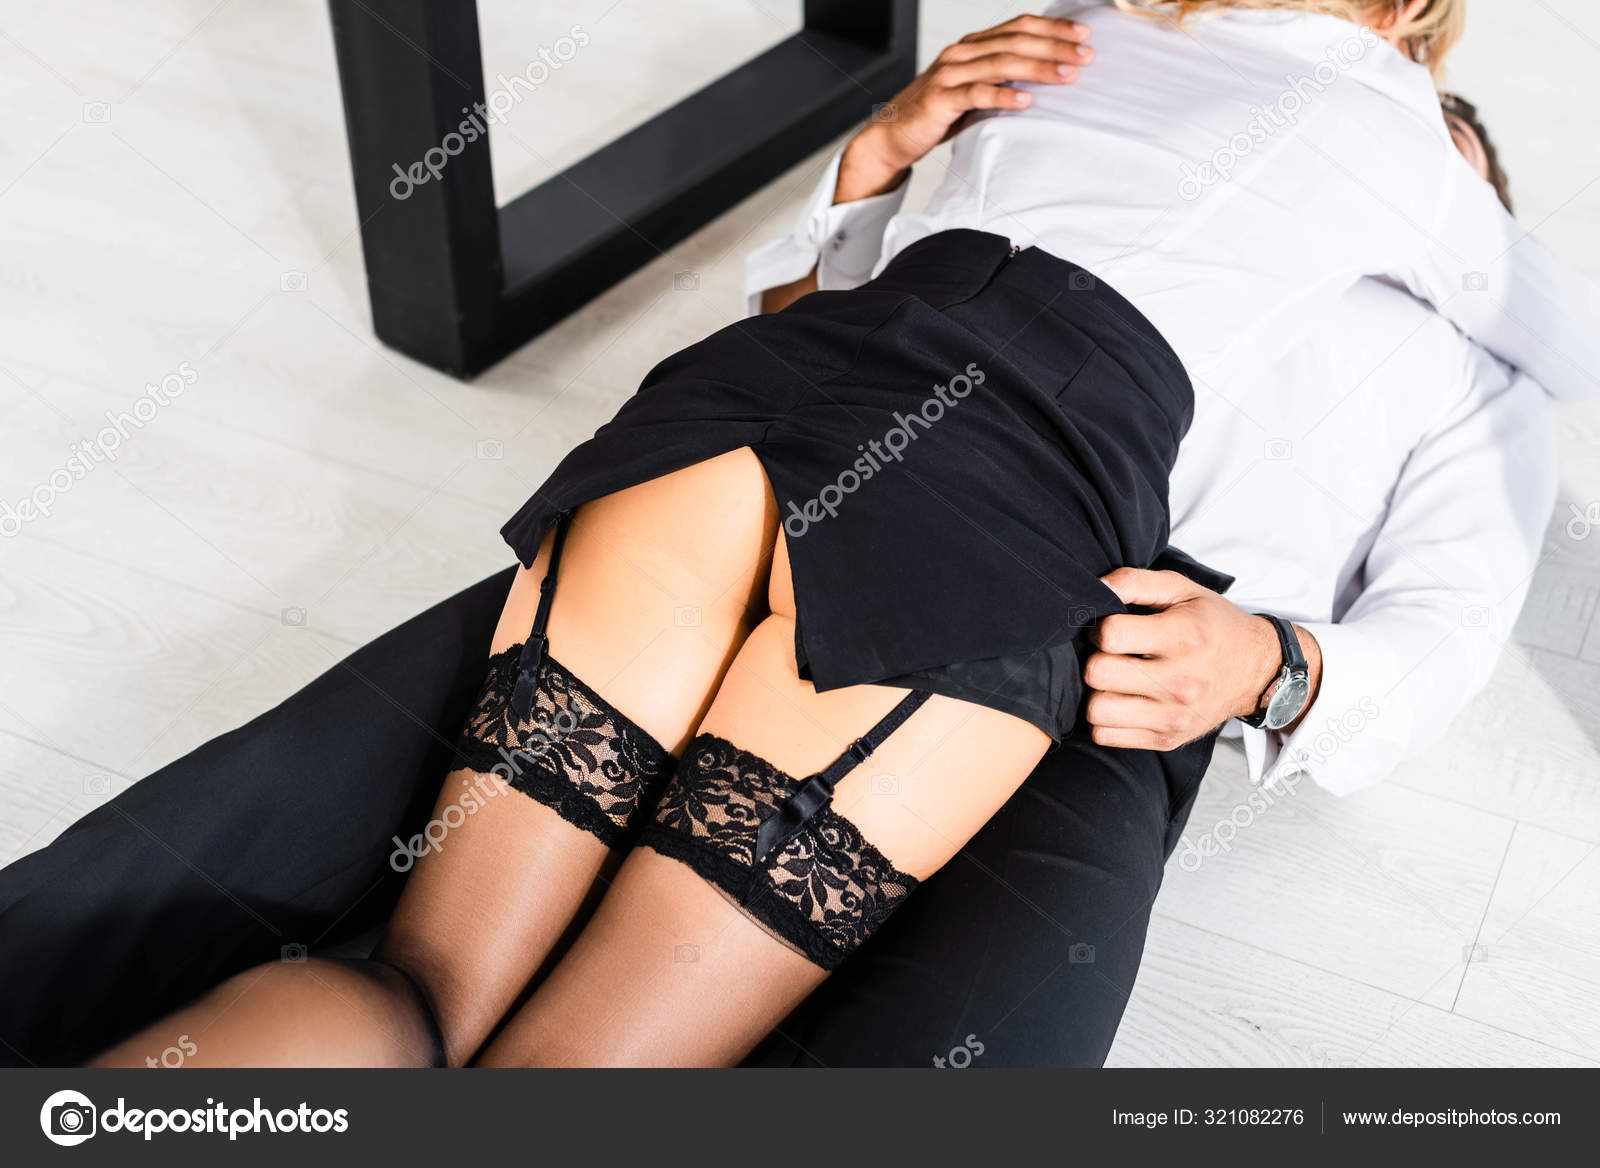 Office stockings